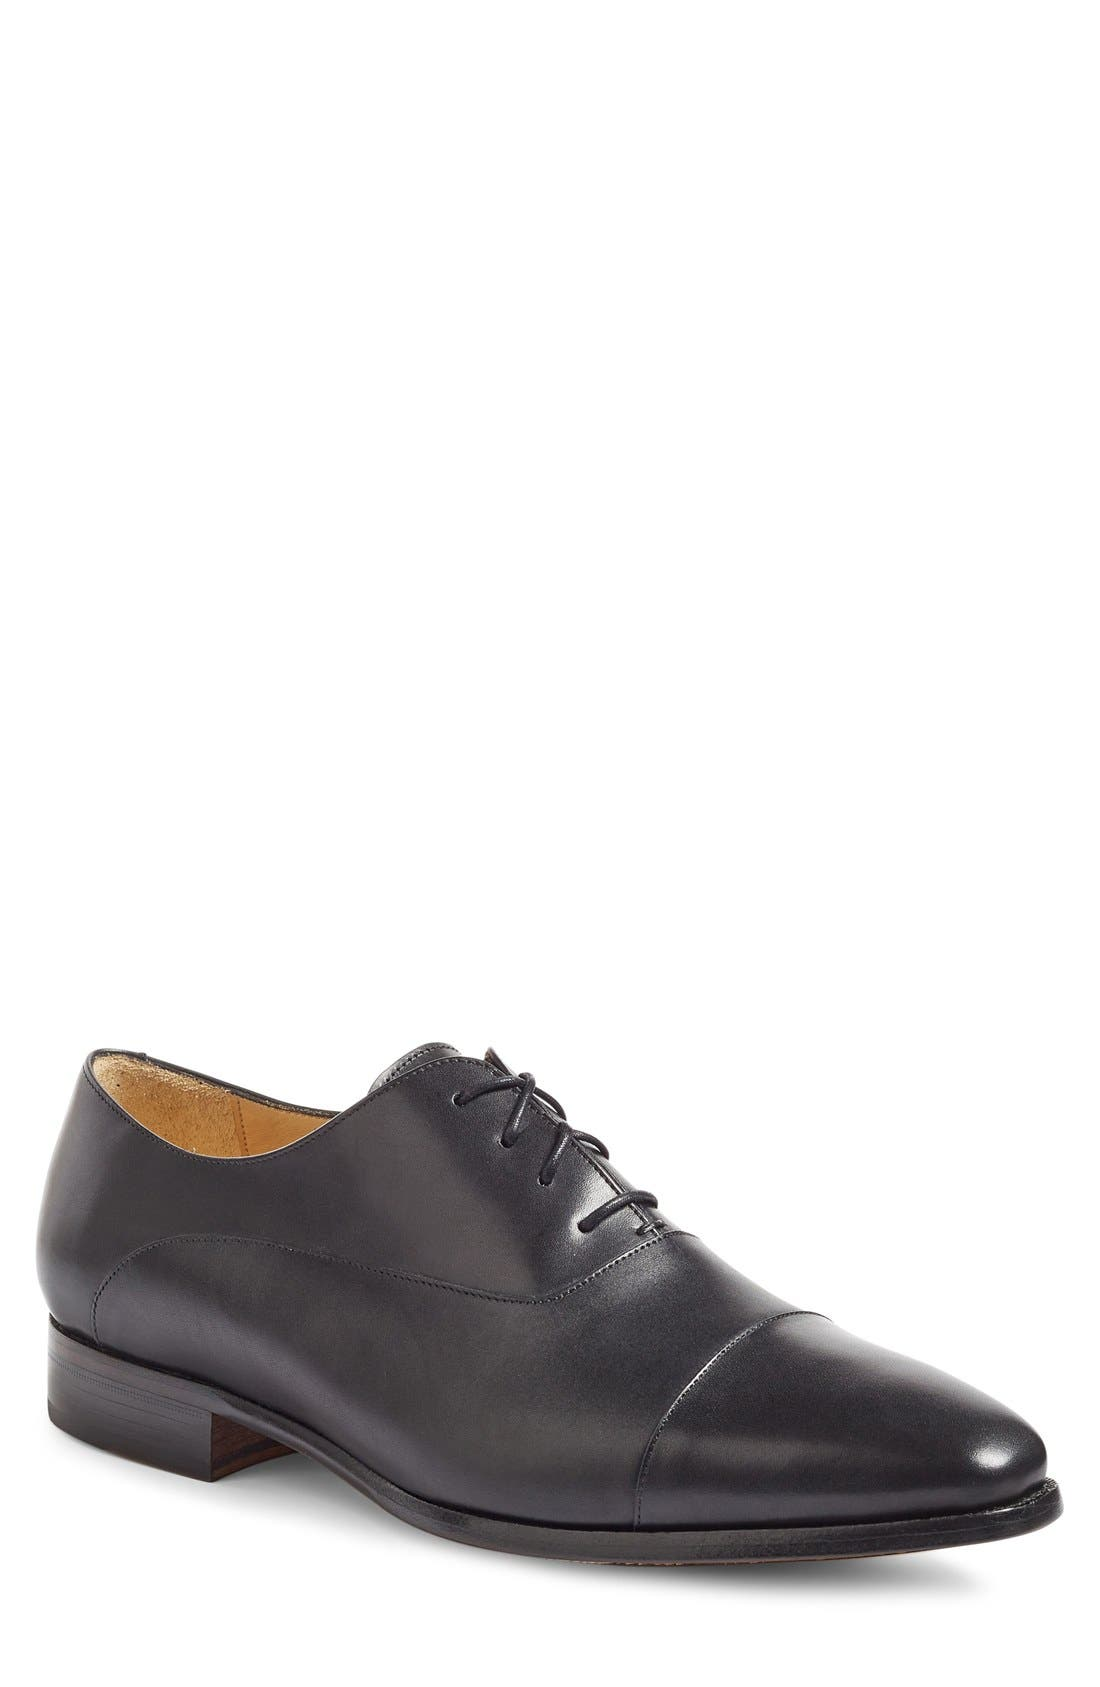 Joe Cap Toe Oxford,                             Main thumbnail 1, color,                             BLACK LEATHER